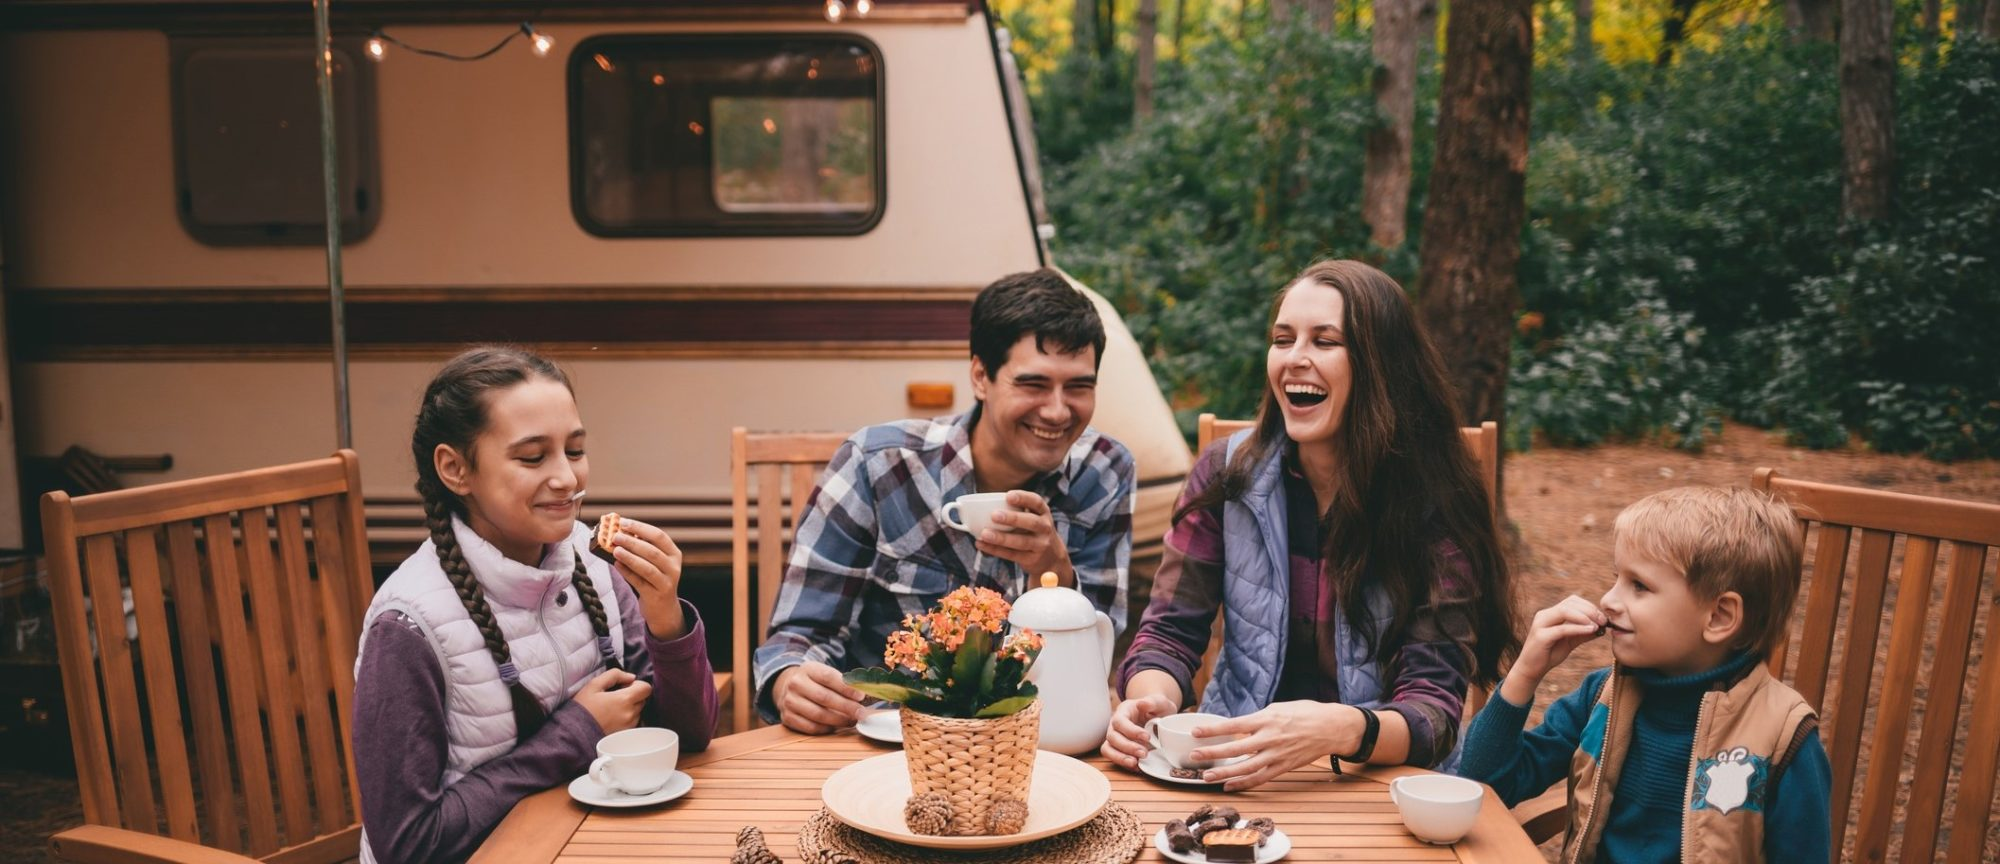 Auto Insights: RV Safety Behind the Wheel